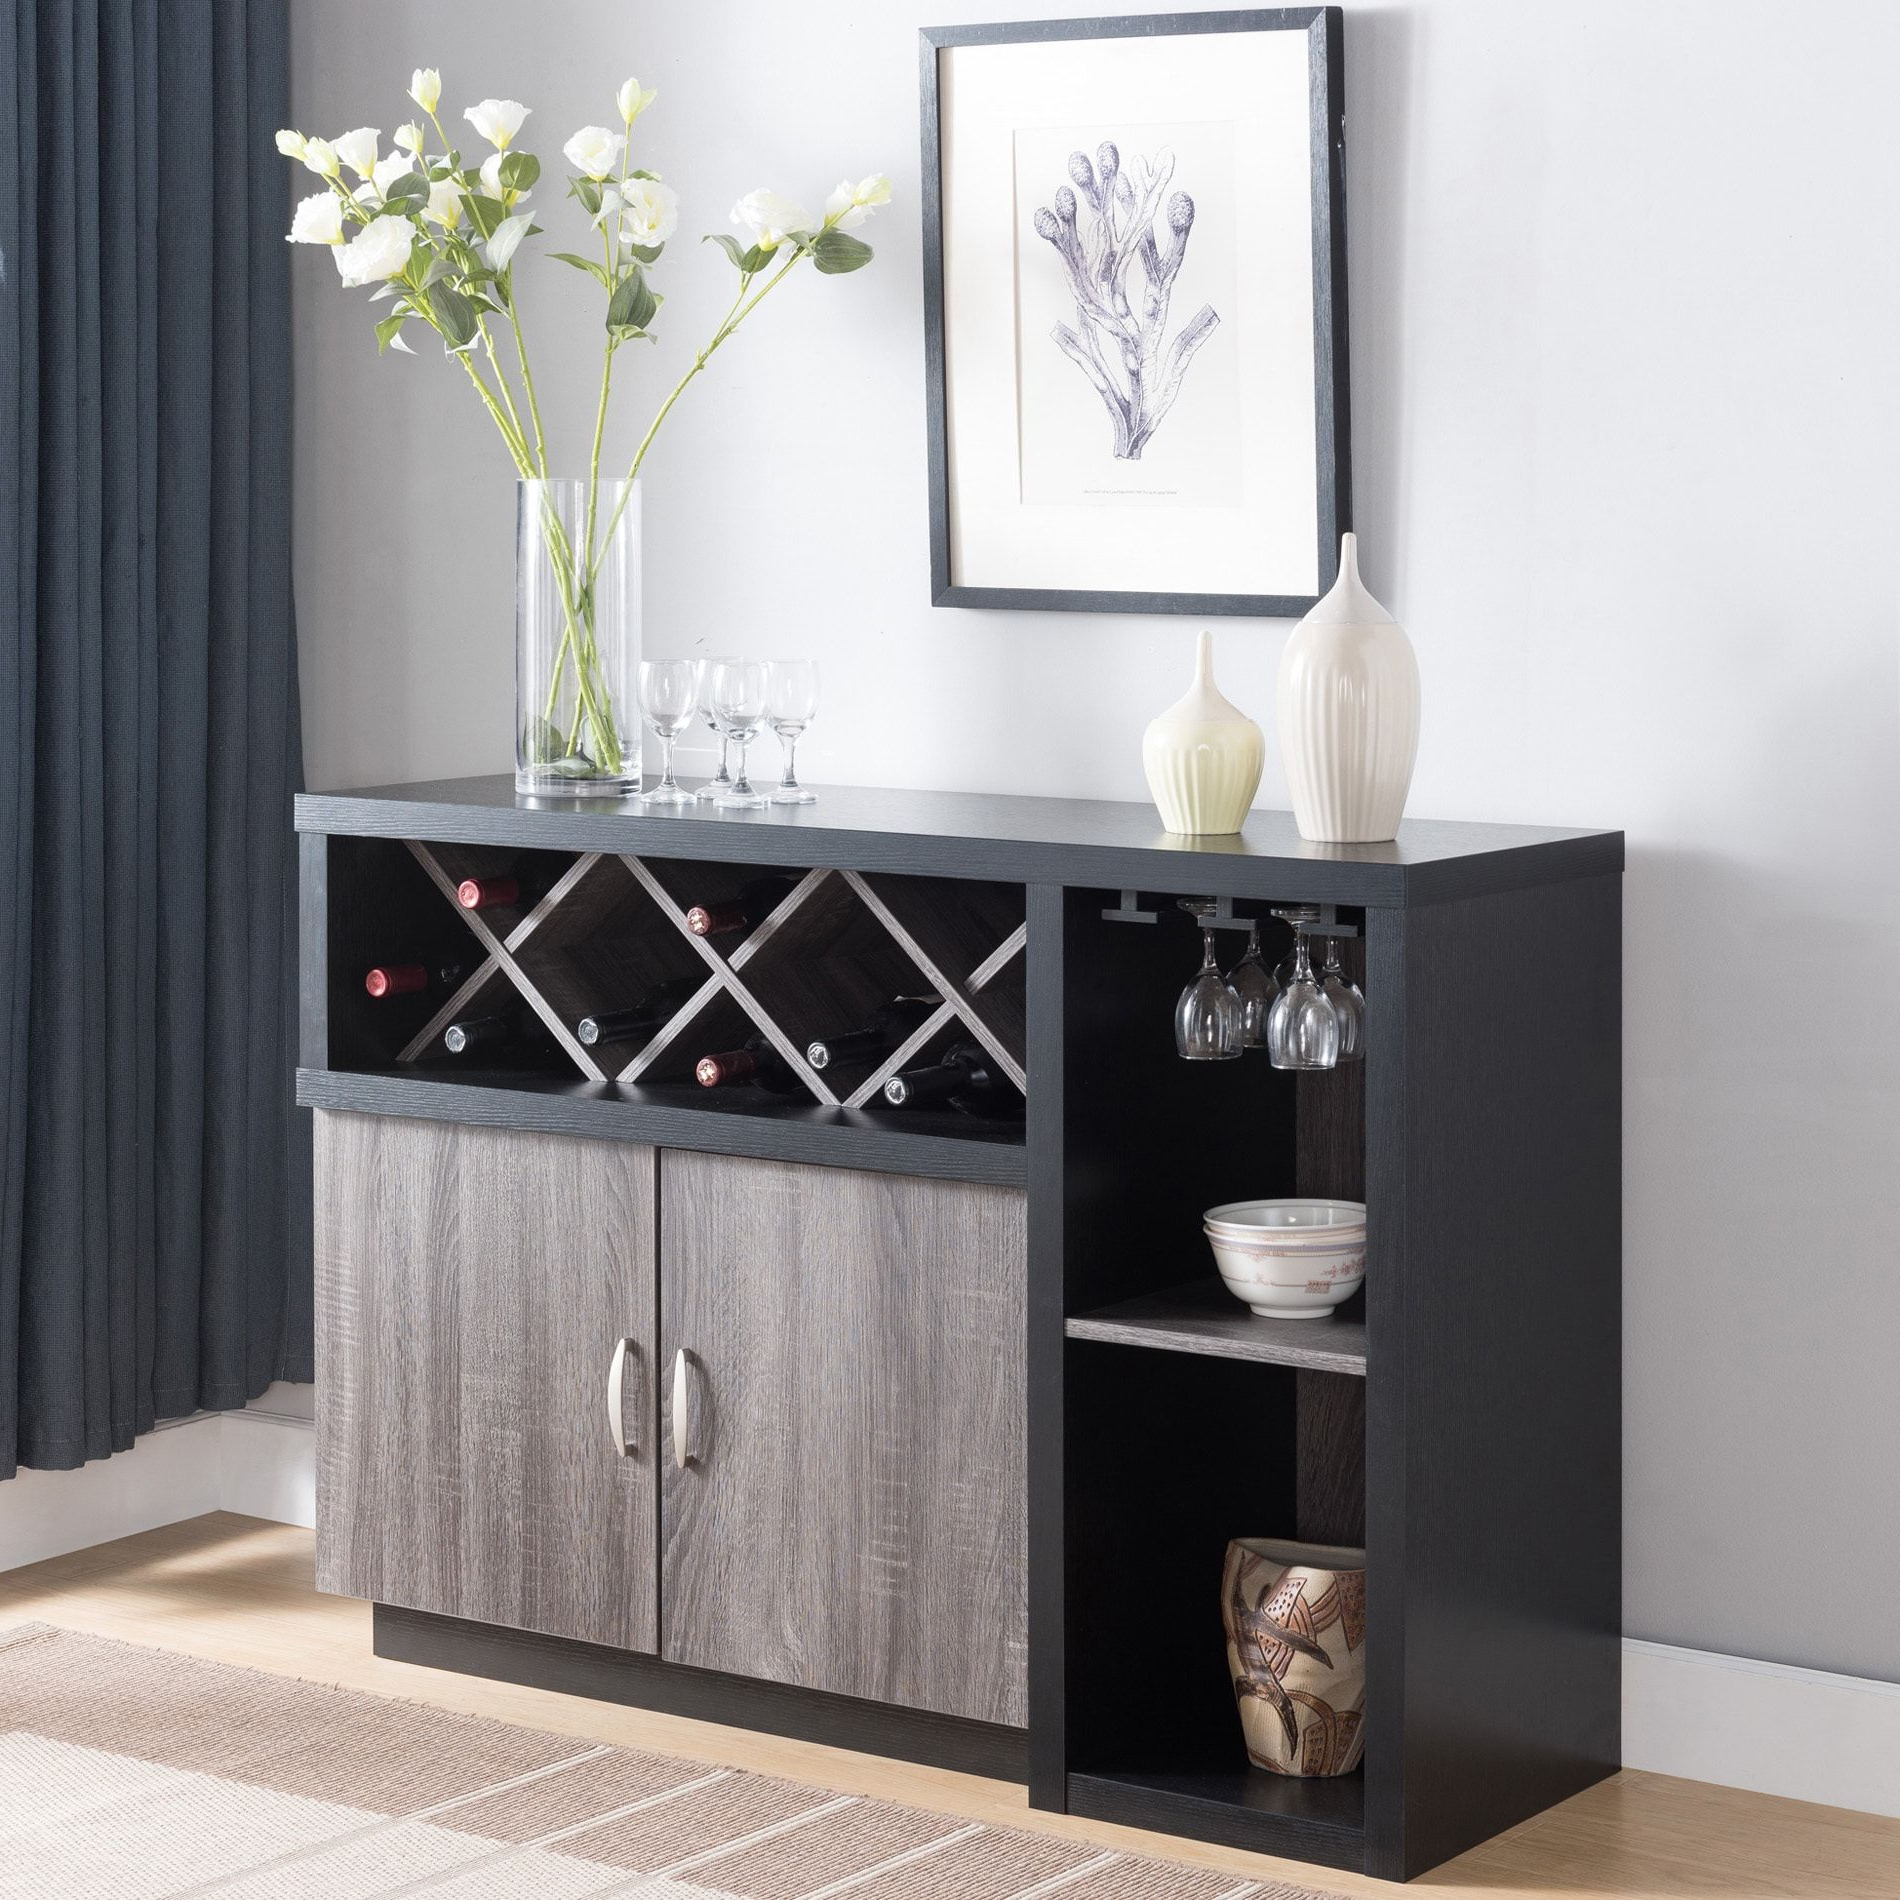 Lantana Contemporary Distressed Grey Buffetfoa In 2019 Throughout Contemporary Wine Bar Buffets (View 18 of 20)